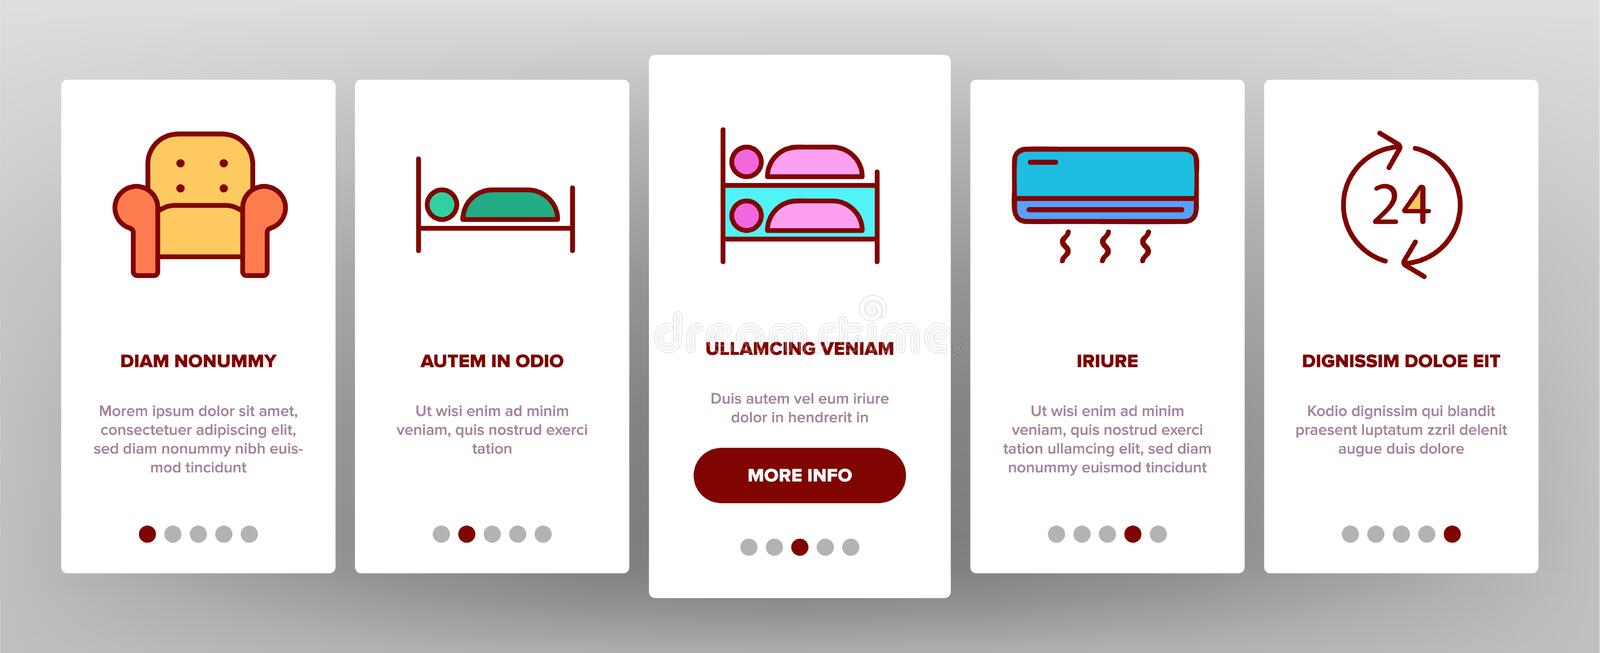 Color Hostel, Tourist Accommodation Vector Onboarding. Mobile App Page Screen. Hostel Facilities And Services. Outline Cliparts. Hotel Reservation Pictograms royalty free illustration